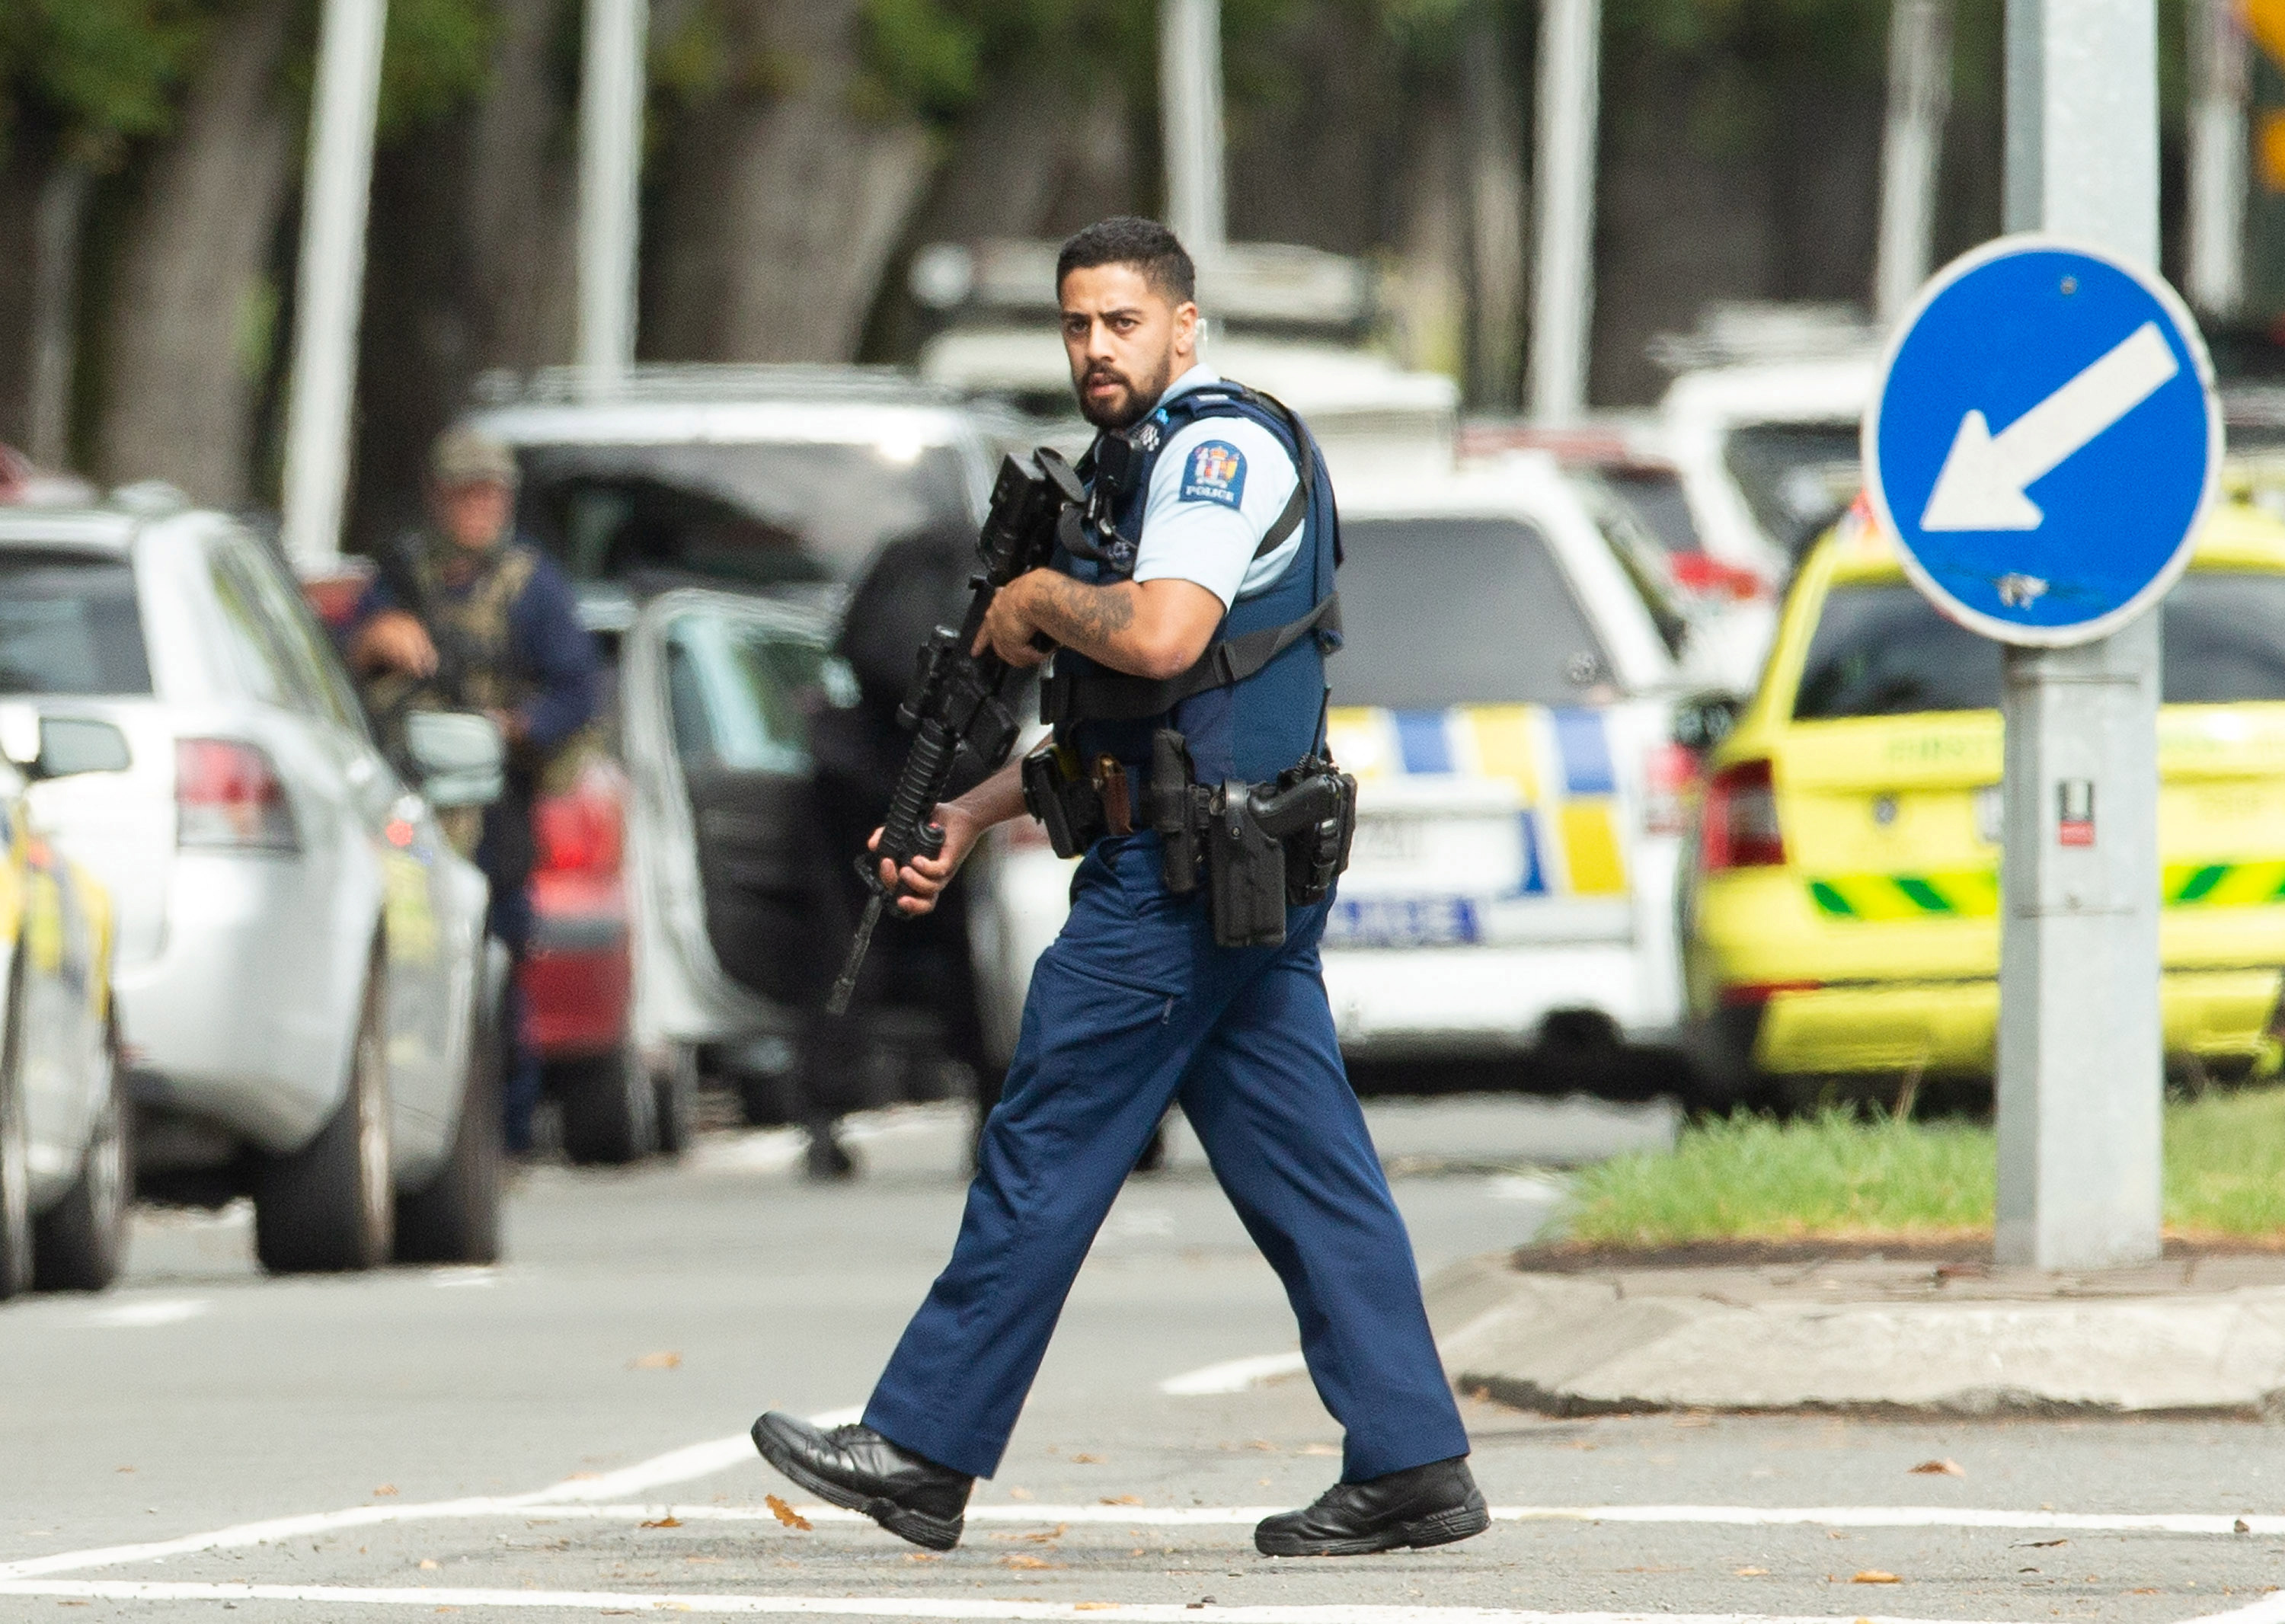 1552627637123-2019-03-15T042801Z_1101265115_RC1A0CD7A340_RTRMADP_3_NEWZEALAND-SHOOTOUT